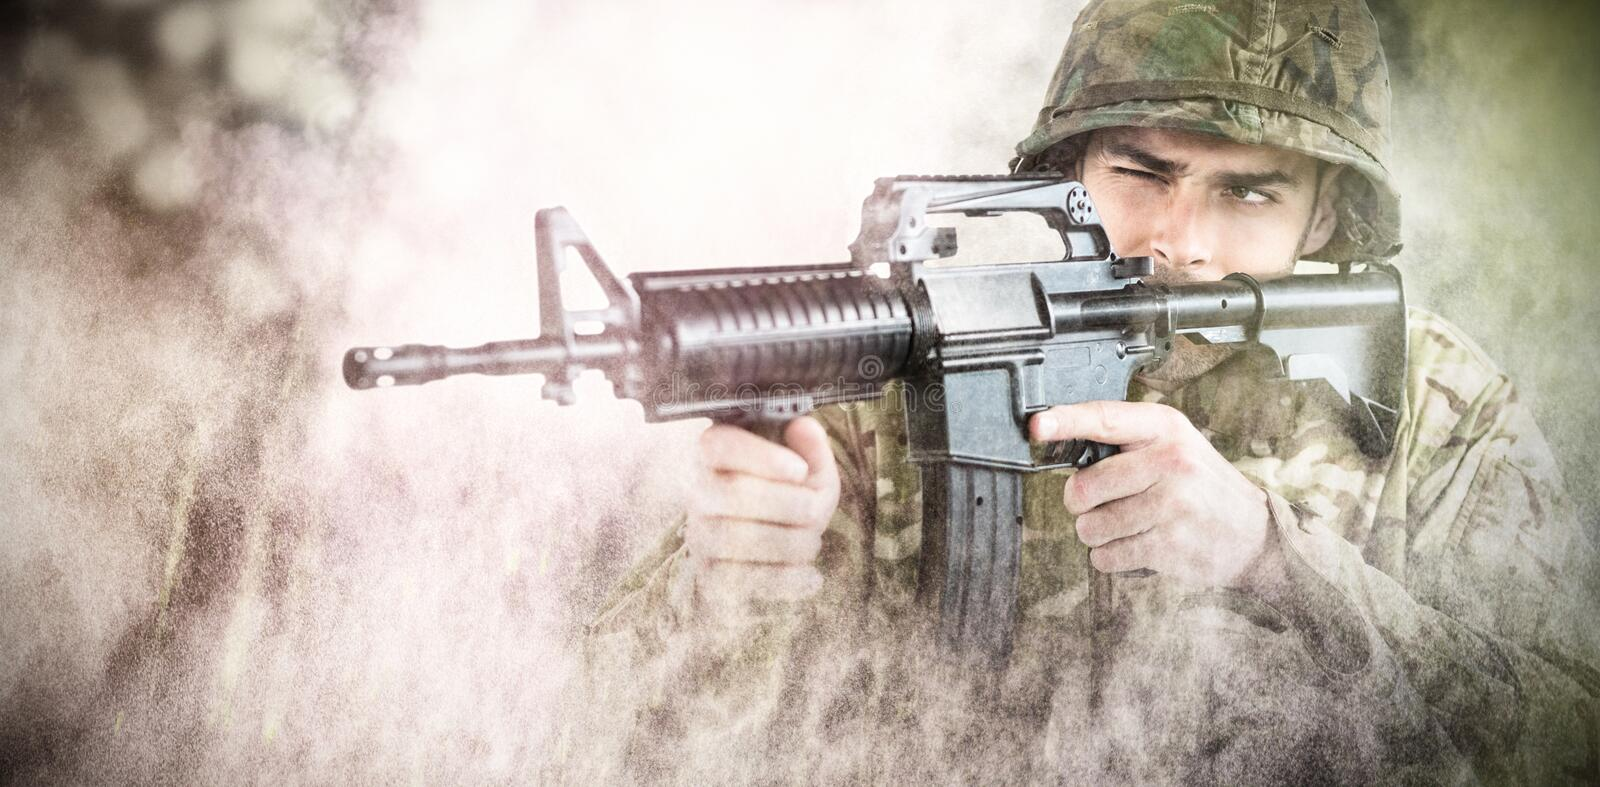 Composite image of soldier aiming with rifle royalty free stock photography